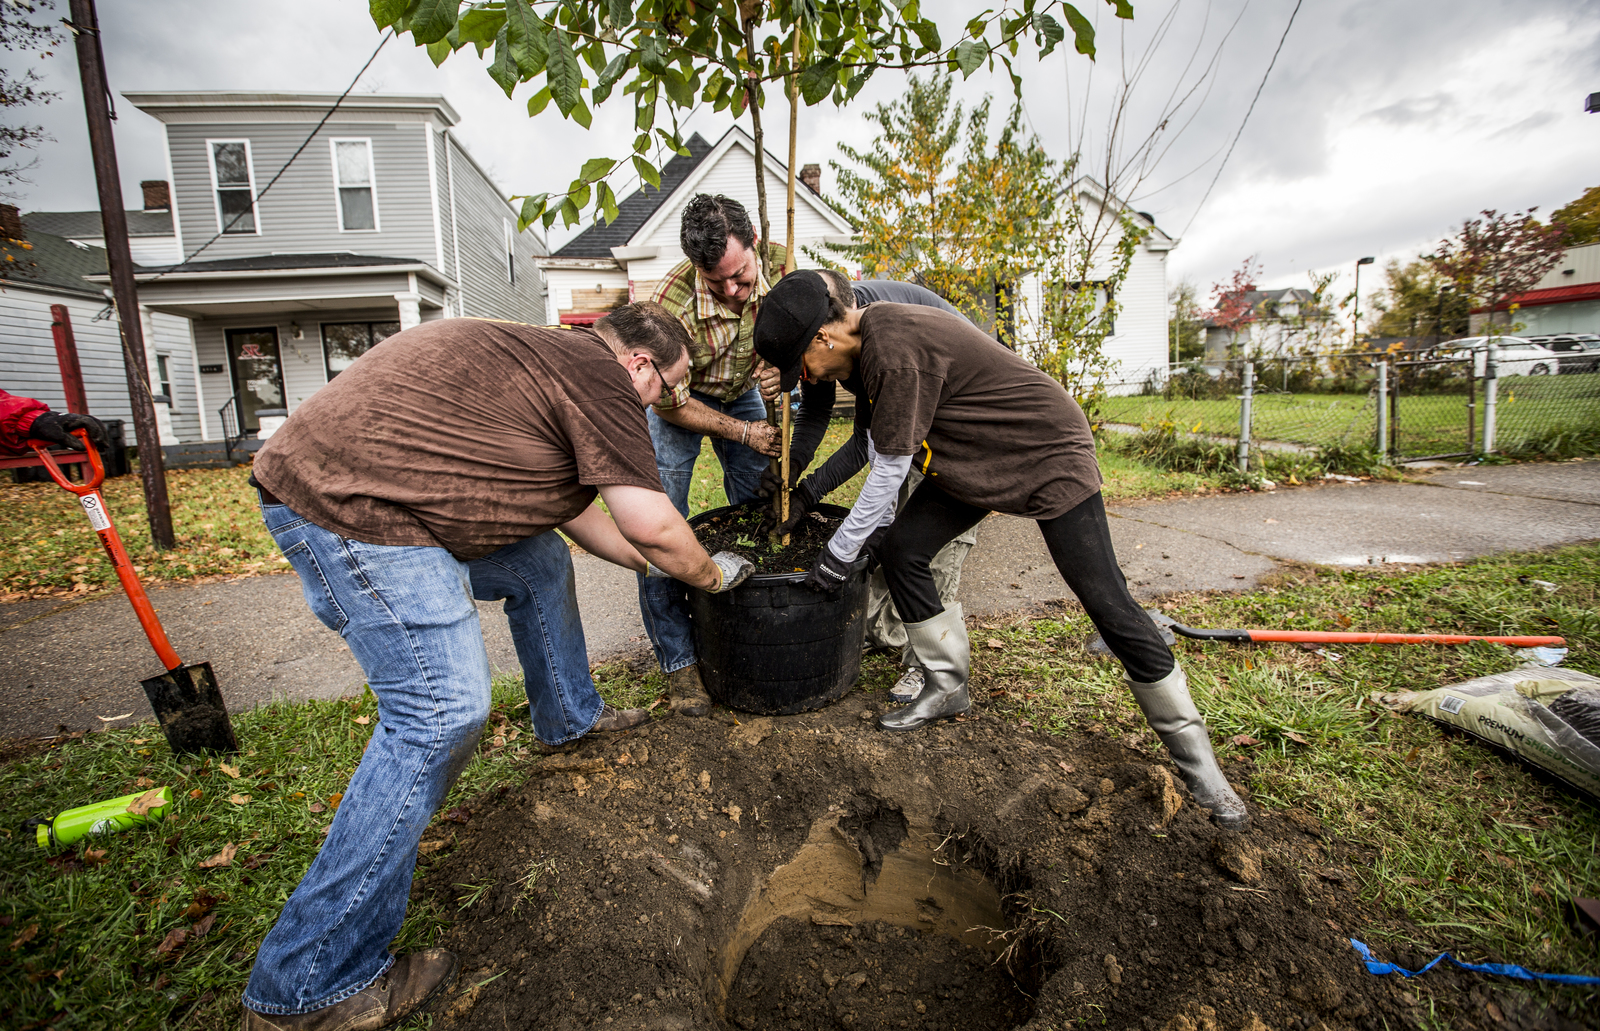 In coordination with generous sponsorships from UPS, The Nature Conservancy, Brown-Forman, and Brightside planted trees for a community-wide planting day in West Louisville, Kentucky. Photo credit: © The Nature Conservancy (Devan King)